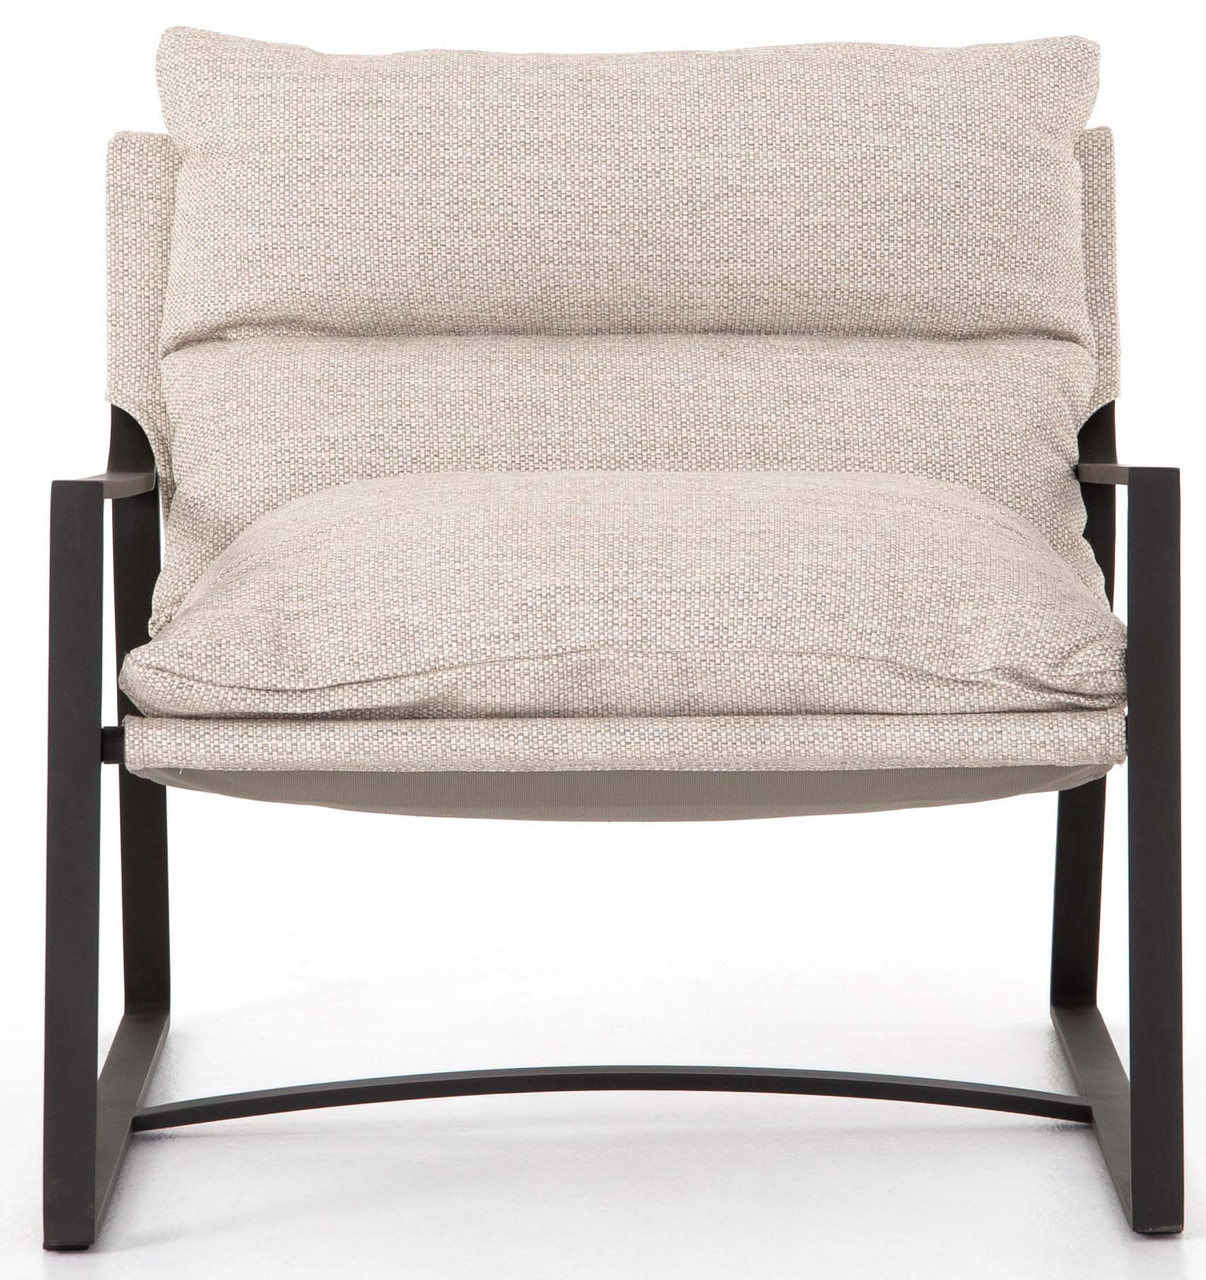 Lola Sling Outdoor Chair